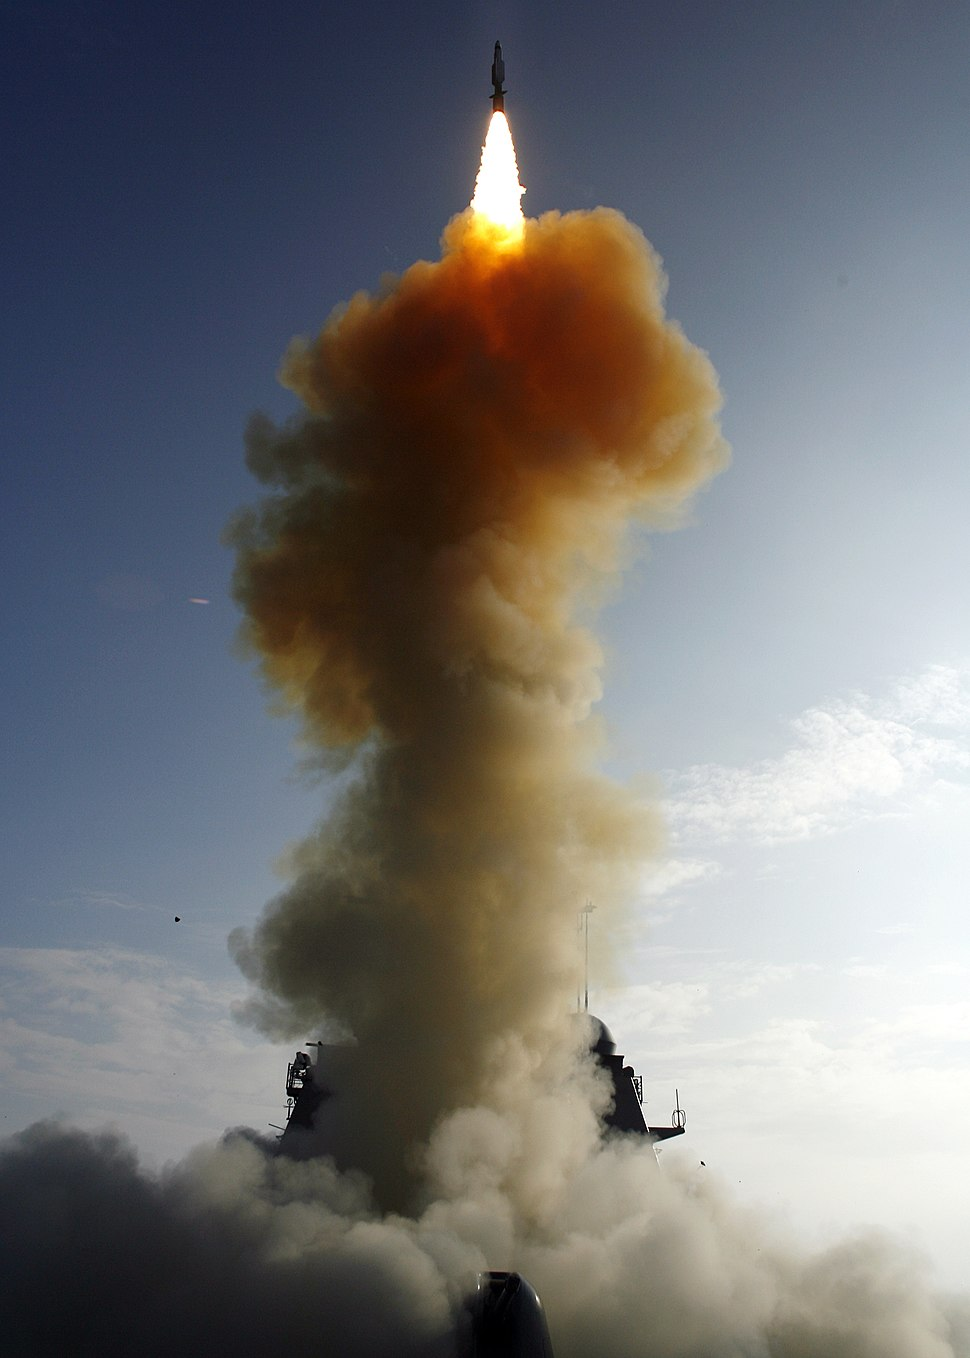 At top, a dark rocket is emitting a bright plume of flame against a blue sky. Underneath, a column of smoke is partly concealing a navy ship.